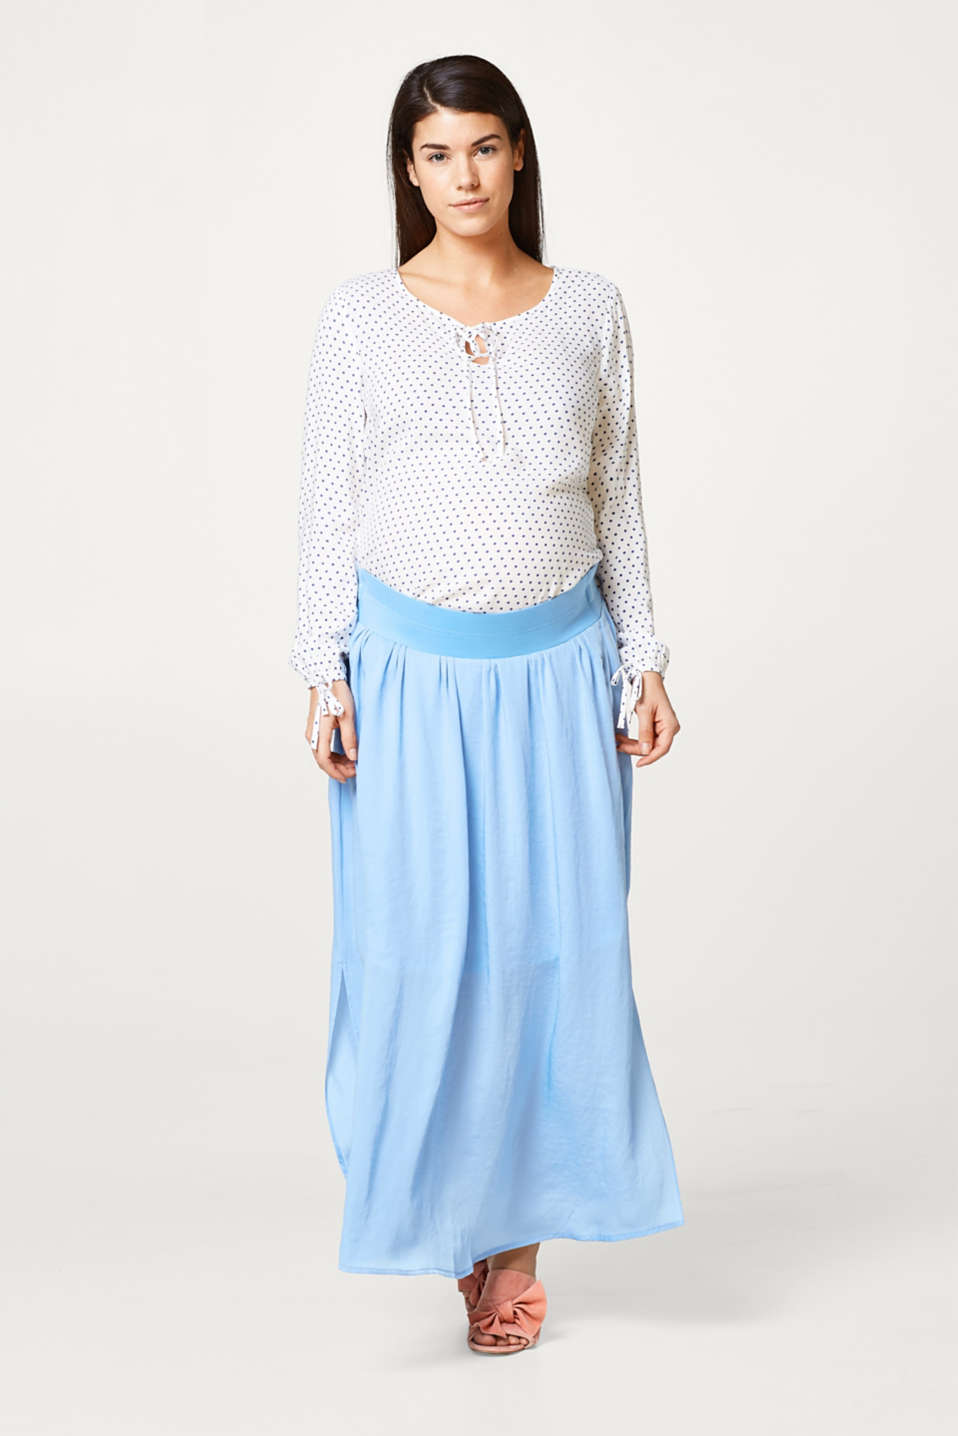 Trendy maxi skirt, under-bump waistband